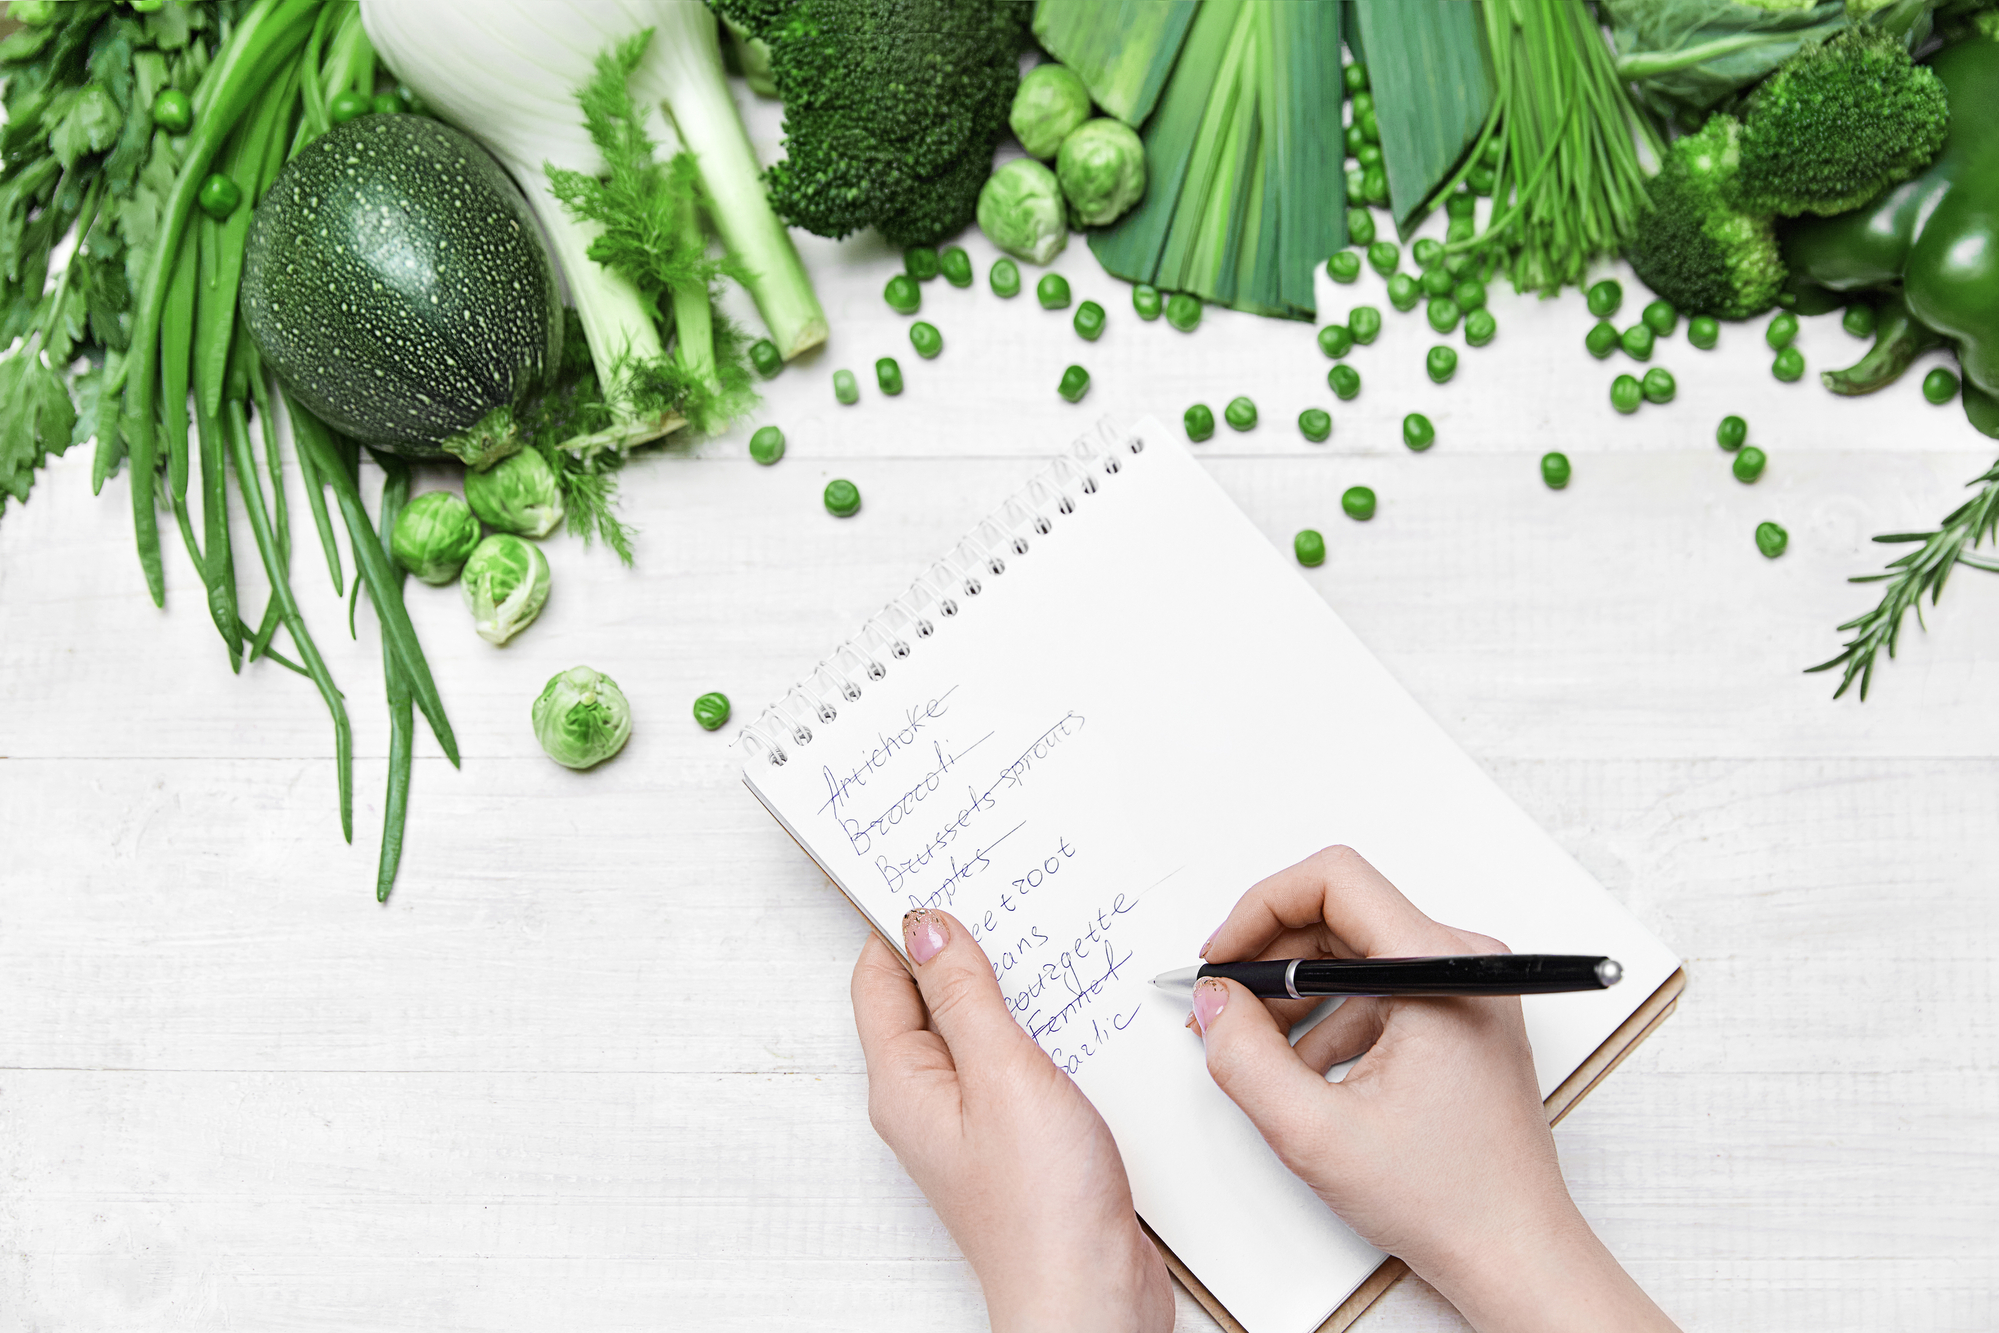 womans hands writing a shopping list against background of green vegetables